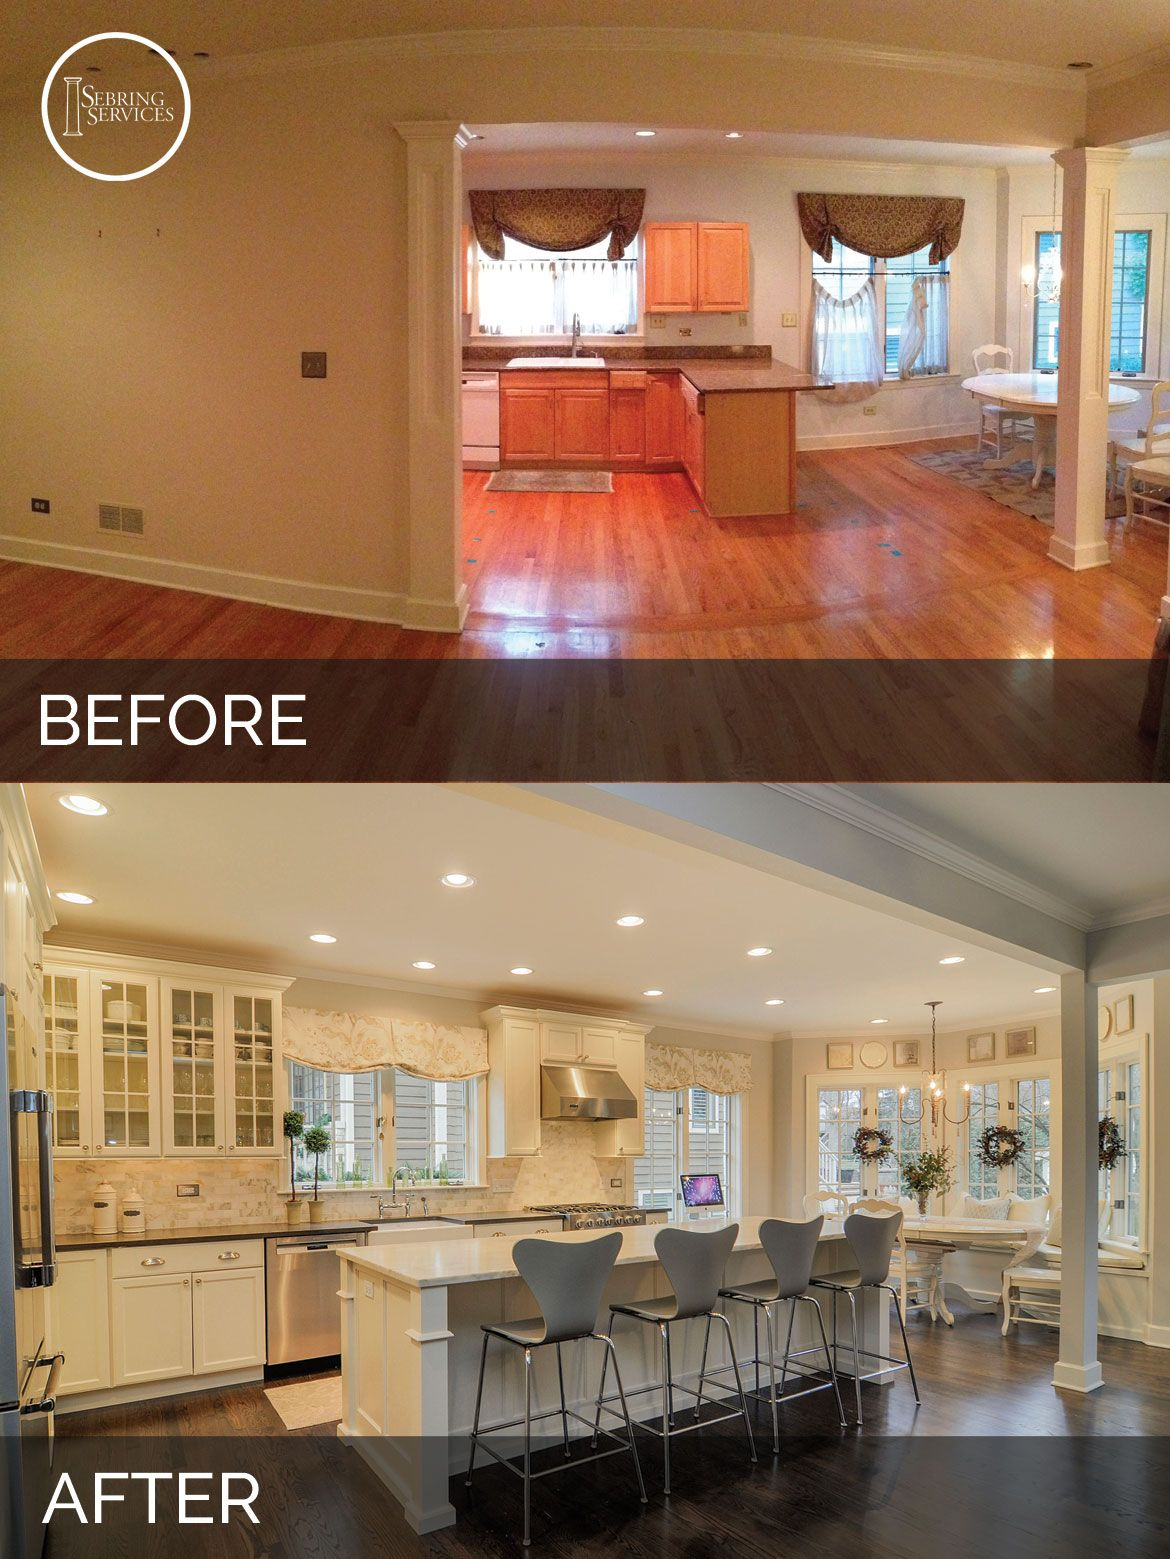 Remodel My Kitchen Ready To Assemble Cabinets Before And After Remodeling Sebring Services